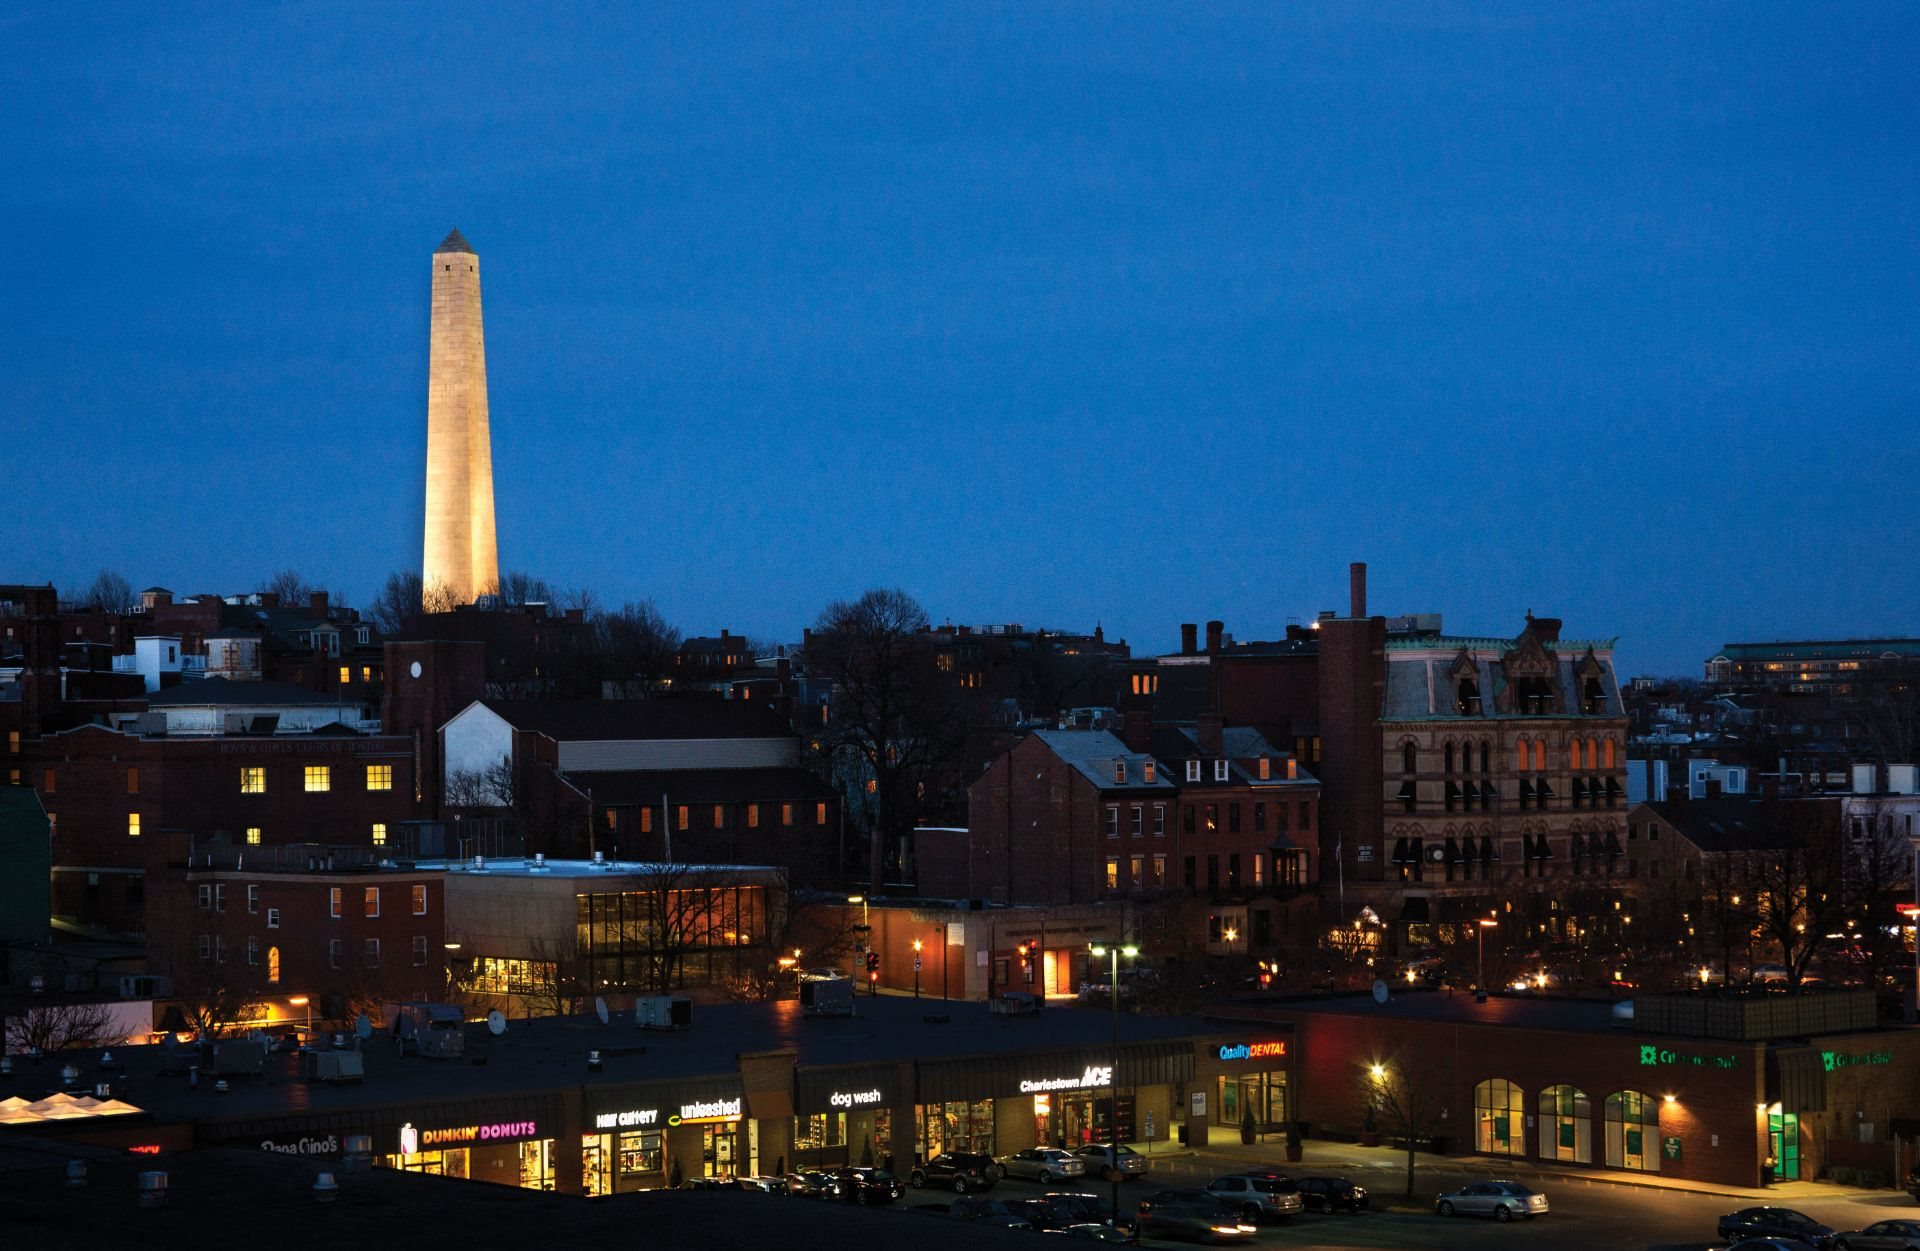 Charming Dusk and Nighttime Views of Charlestown MA and Bunker Hill Monument-at Gatehouse 75, Massachusetts, 02129